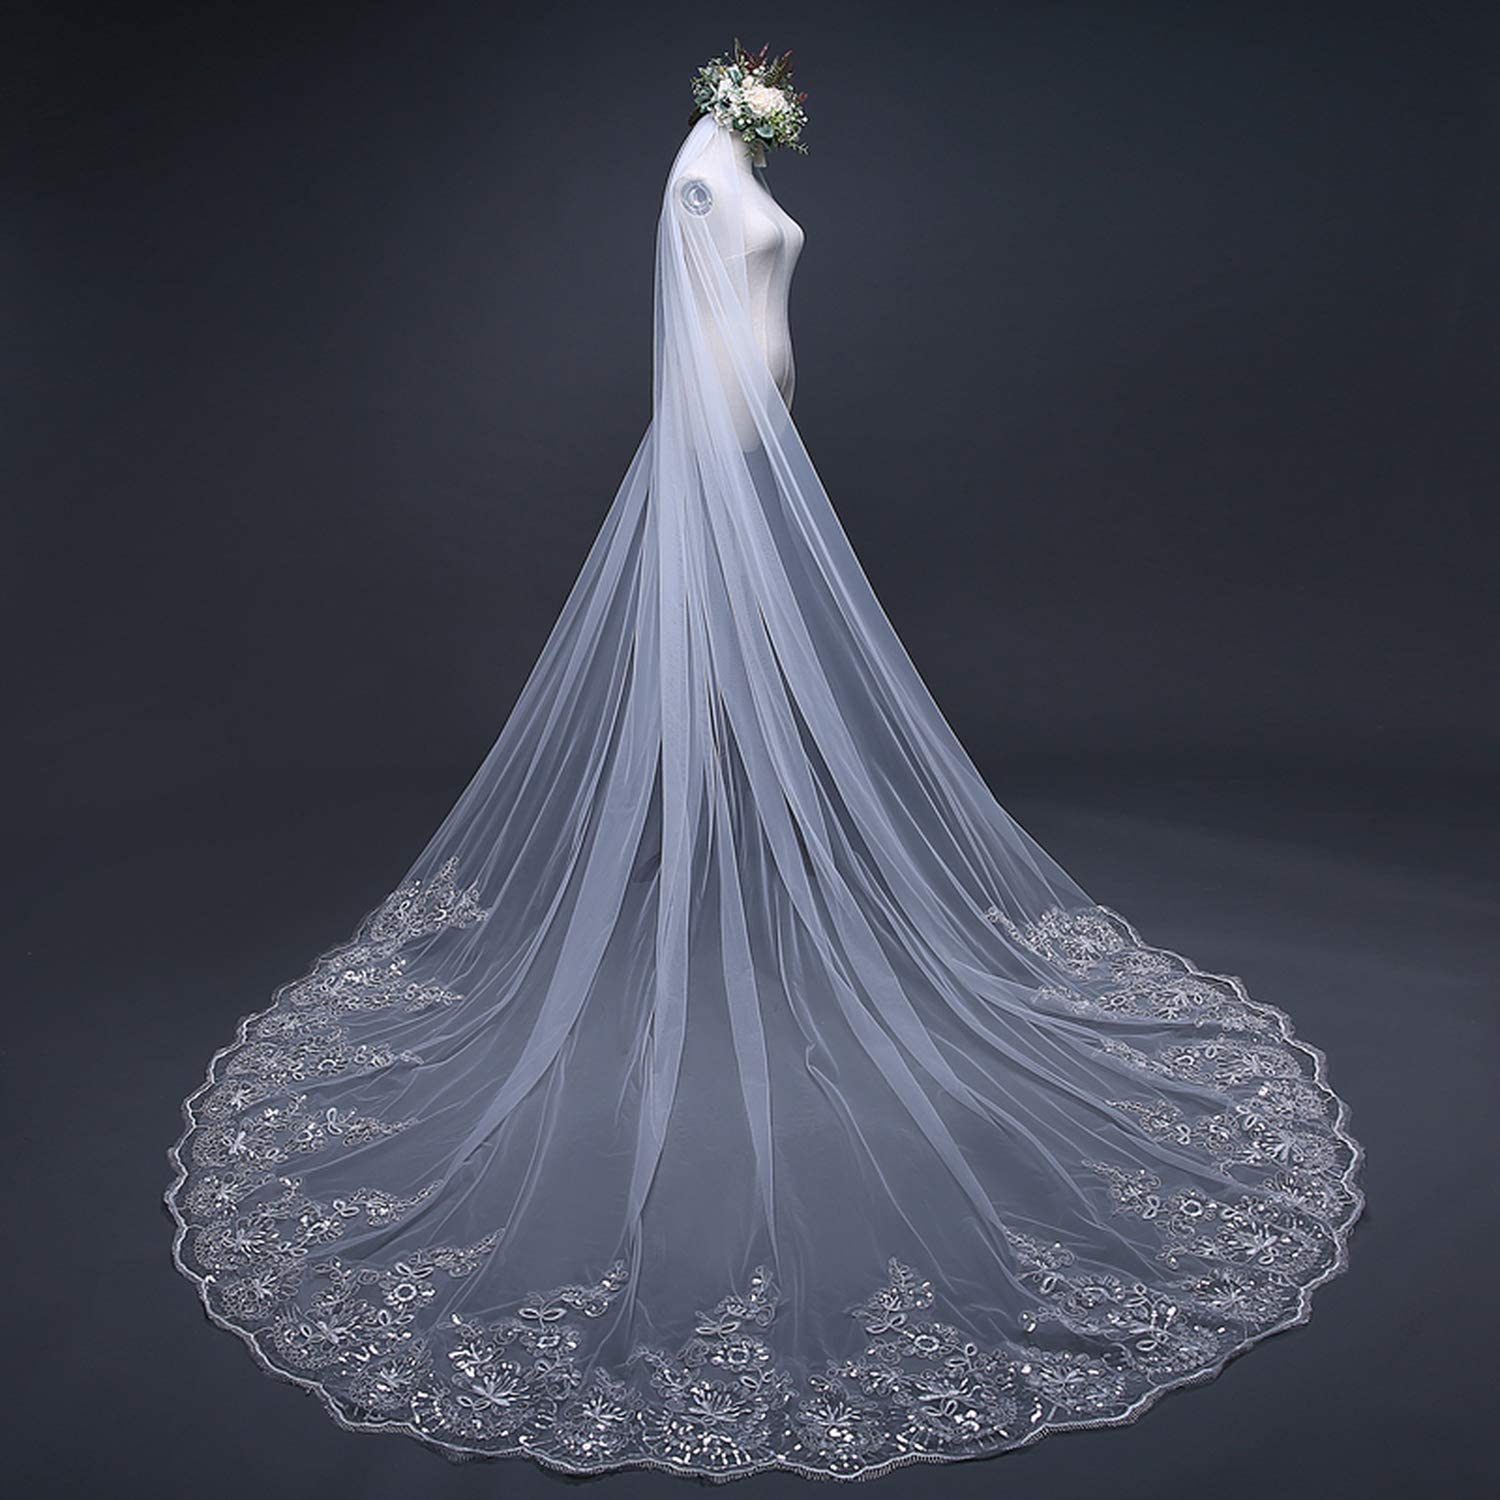 White Ivory Cathedral Wedding Veils Long Lace Edge Bridal Veil with Comb Wedding Accessories Bride Veil